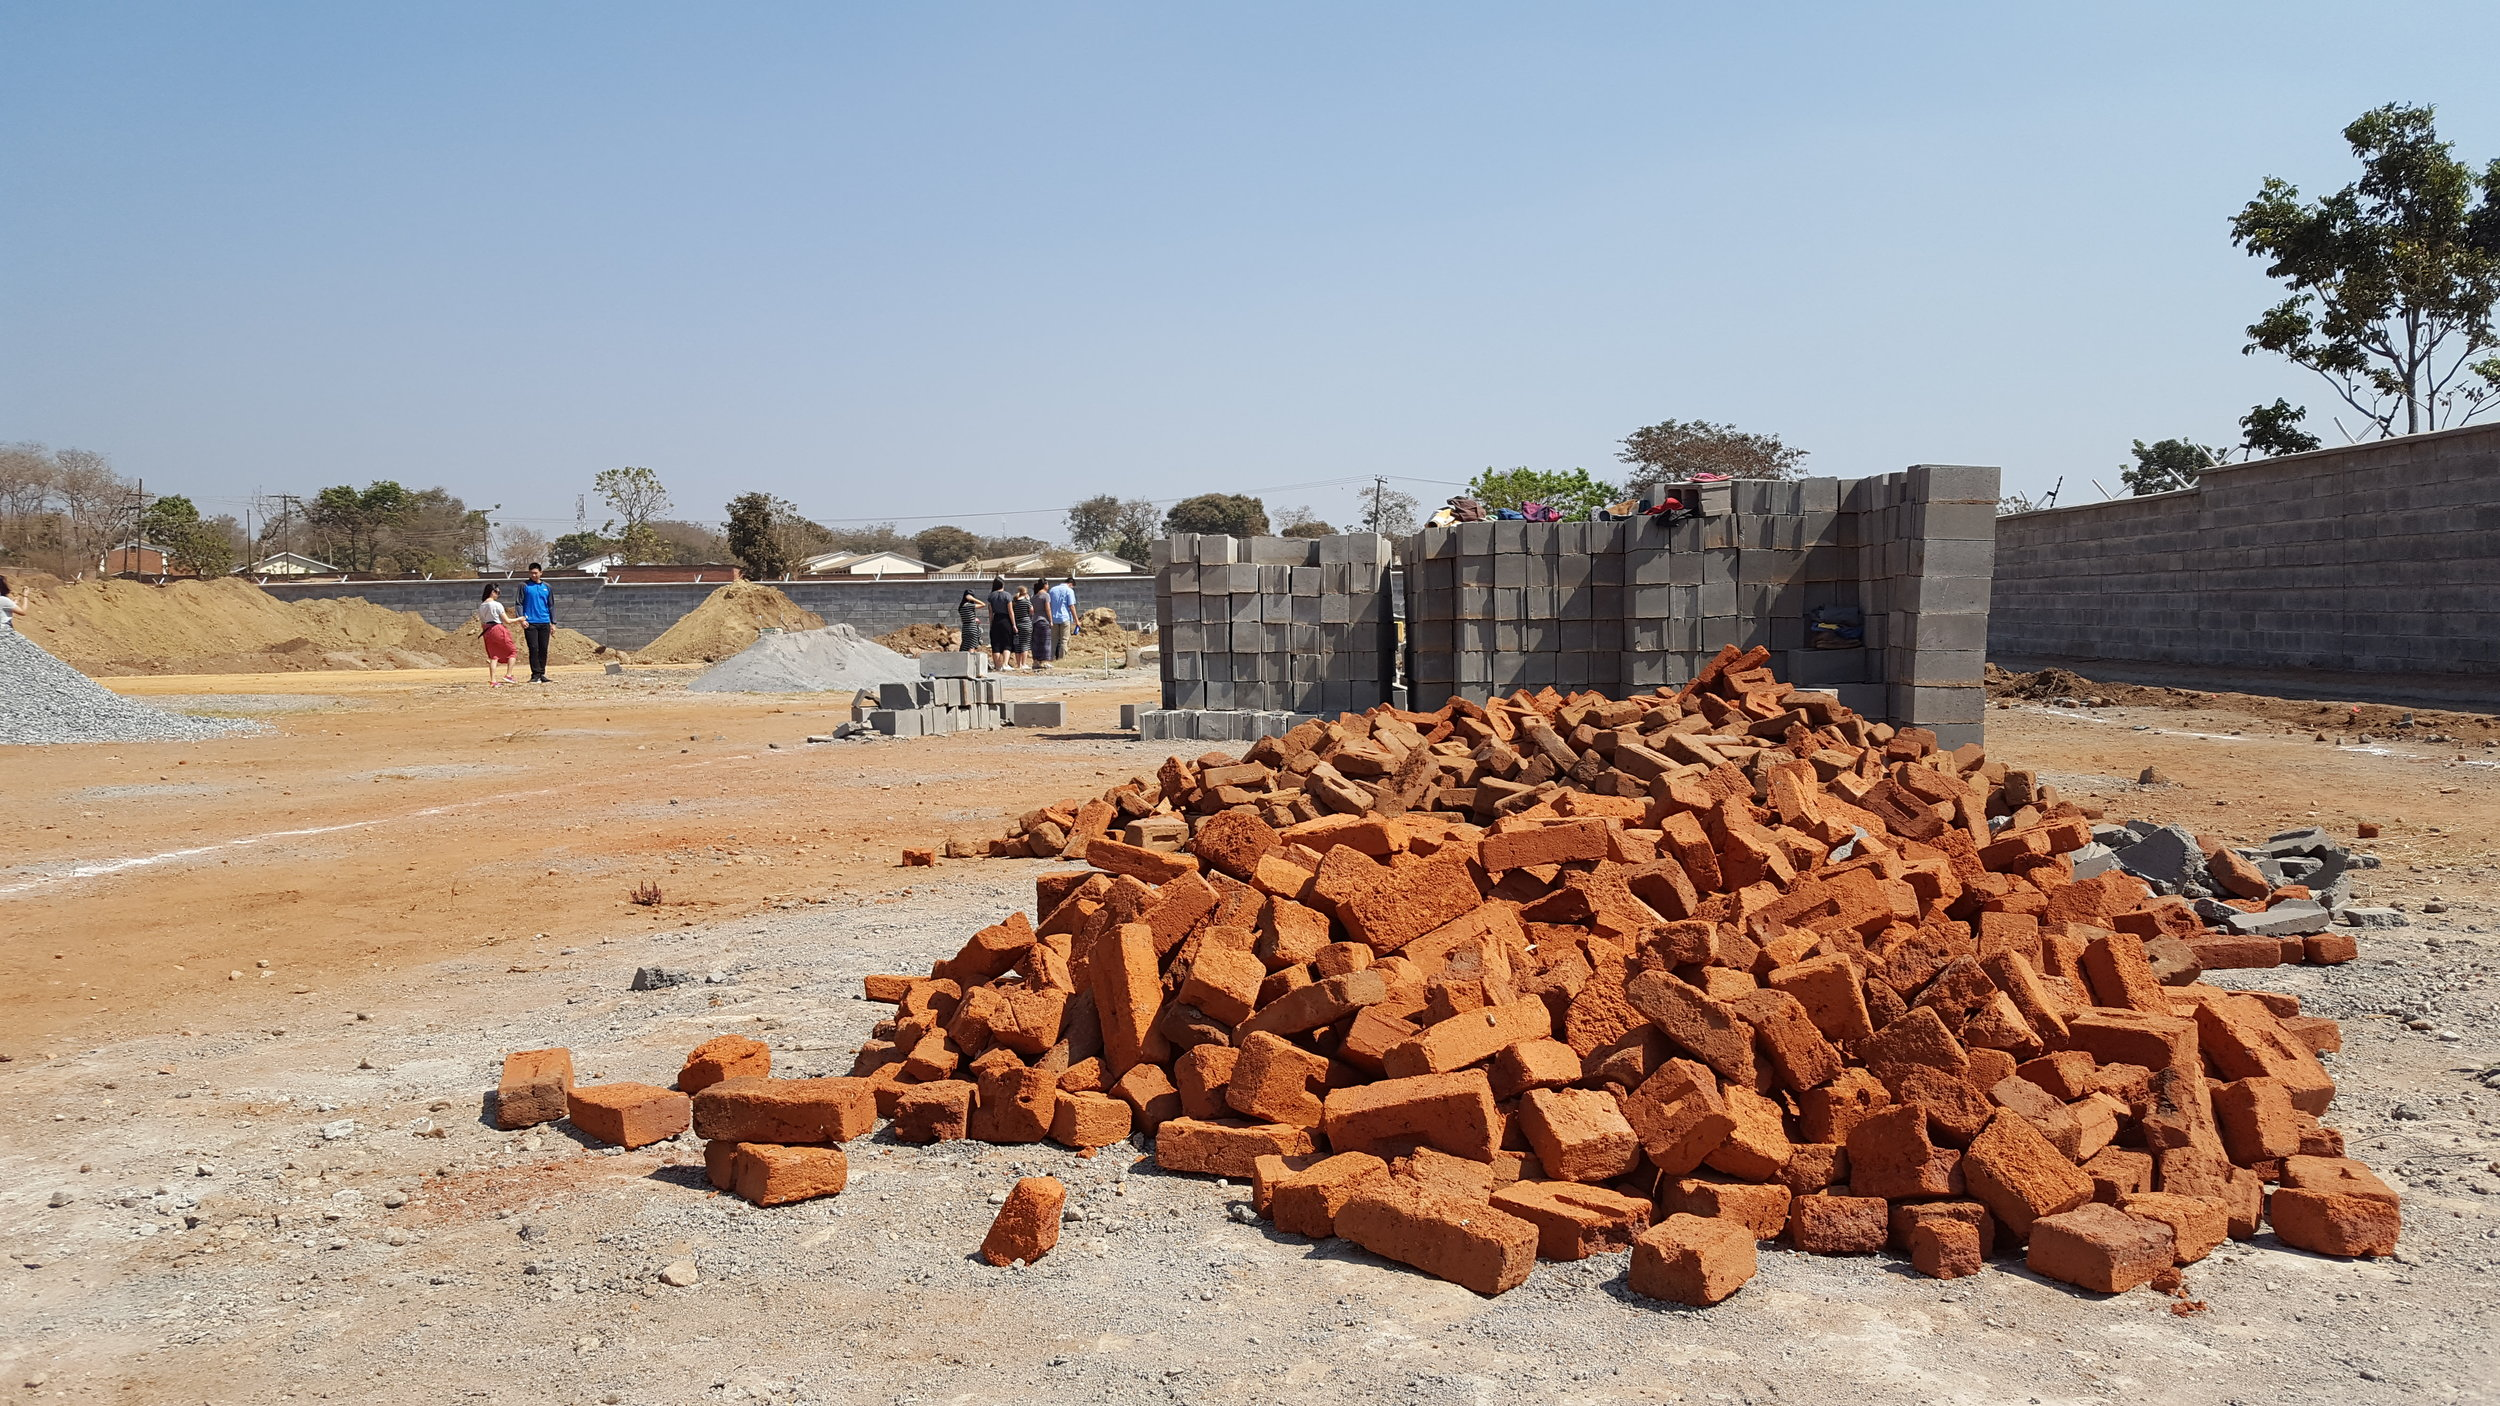 A pile of bricks lying on the ground of the construction site for CAPA's new campus.